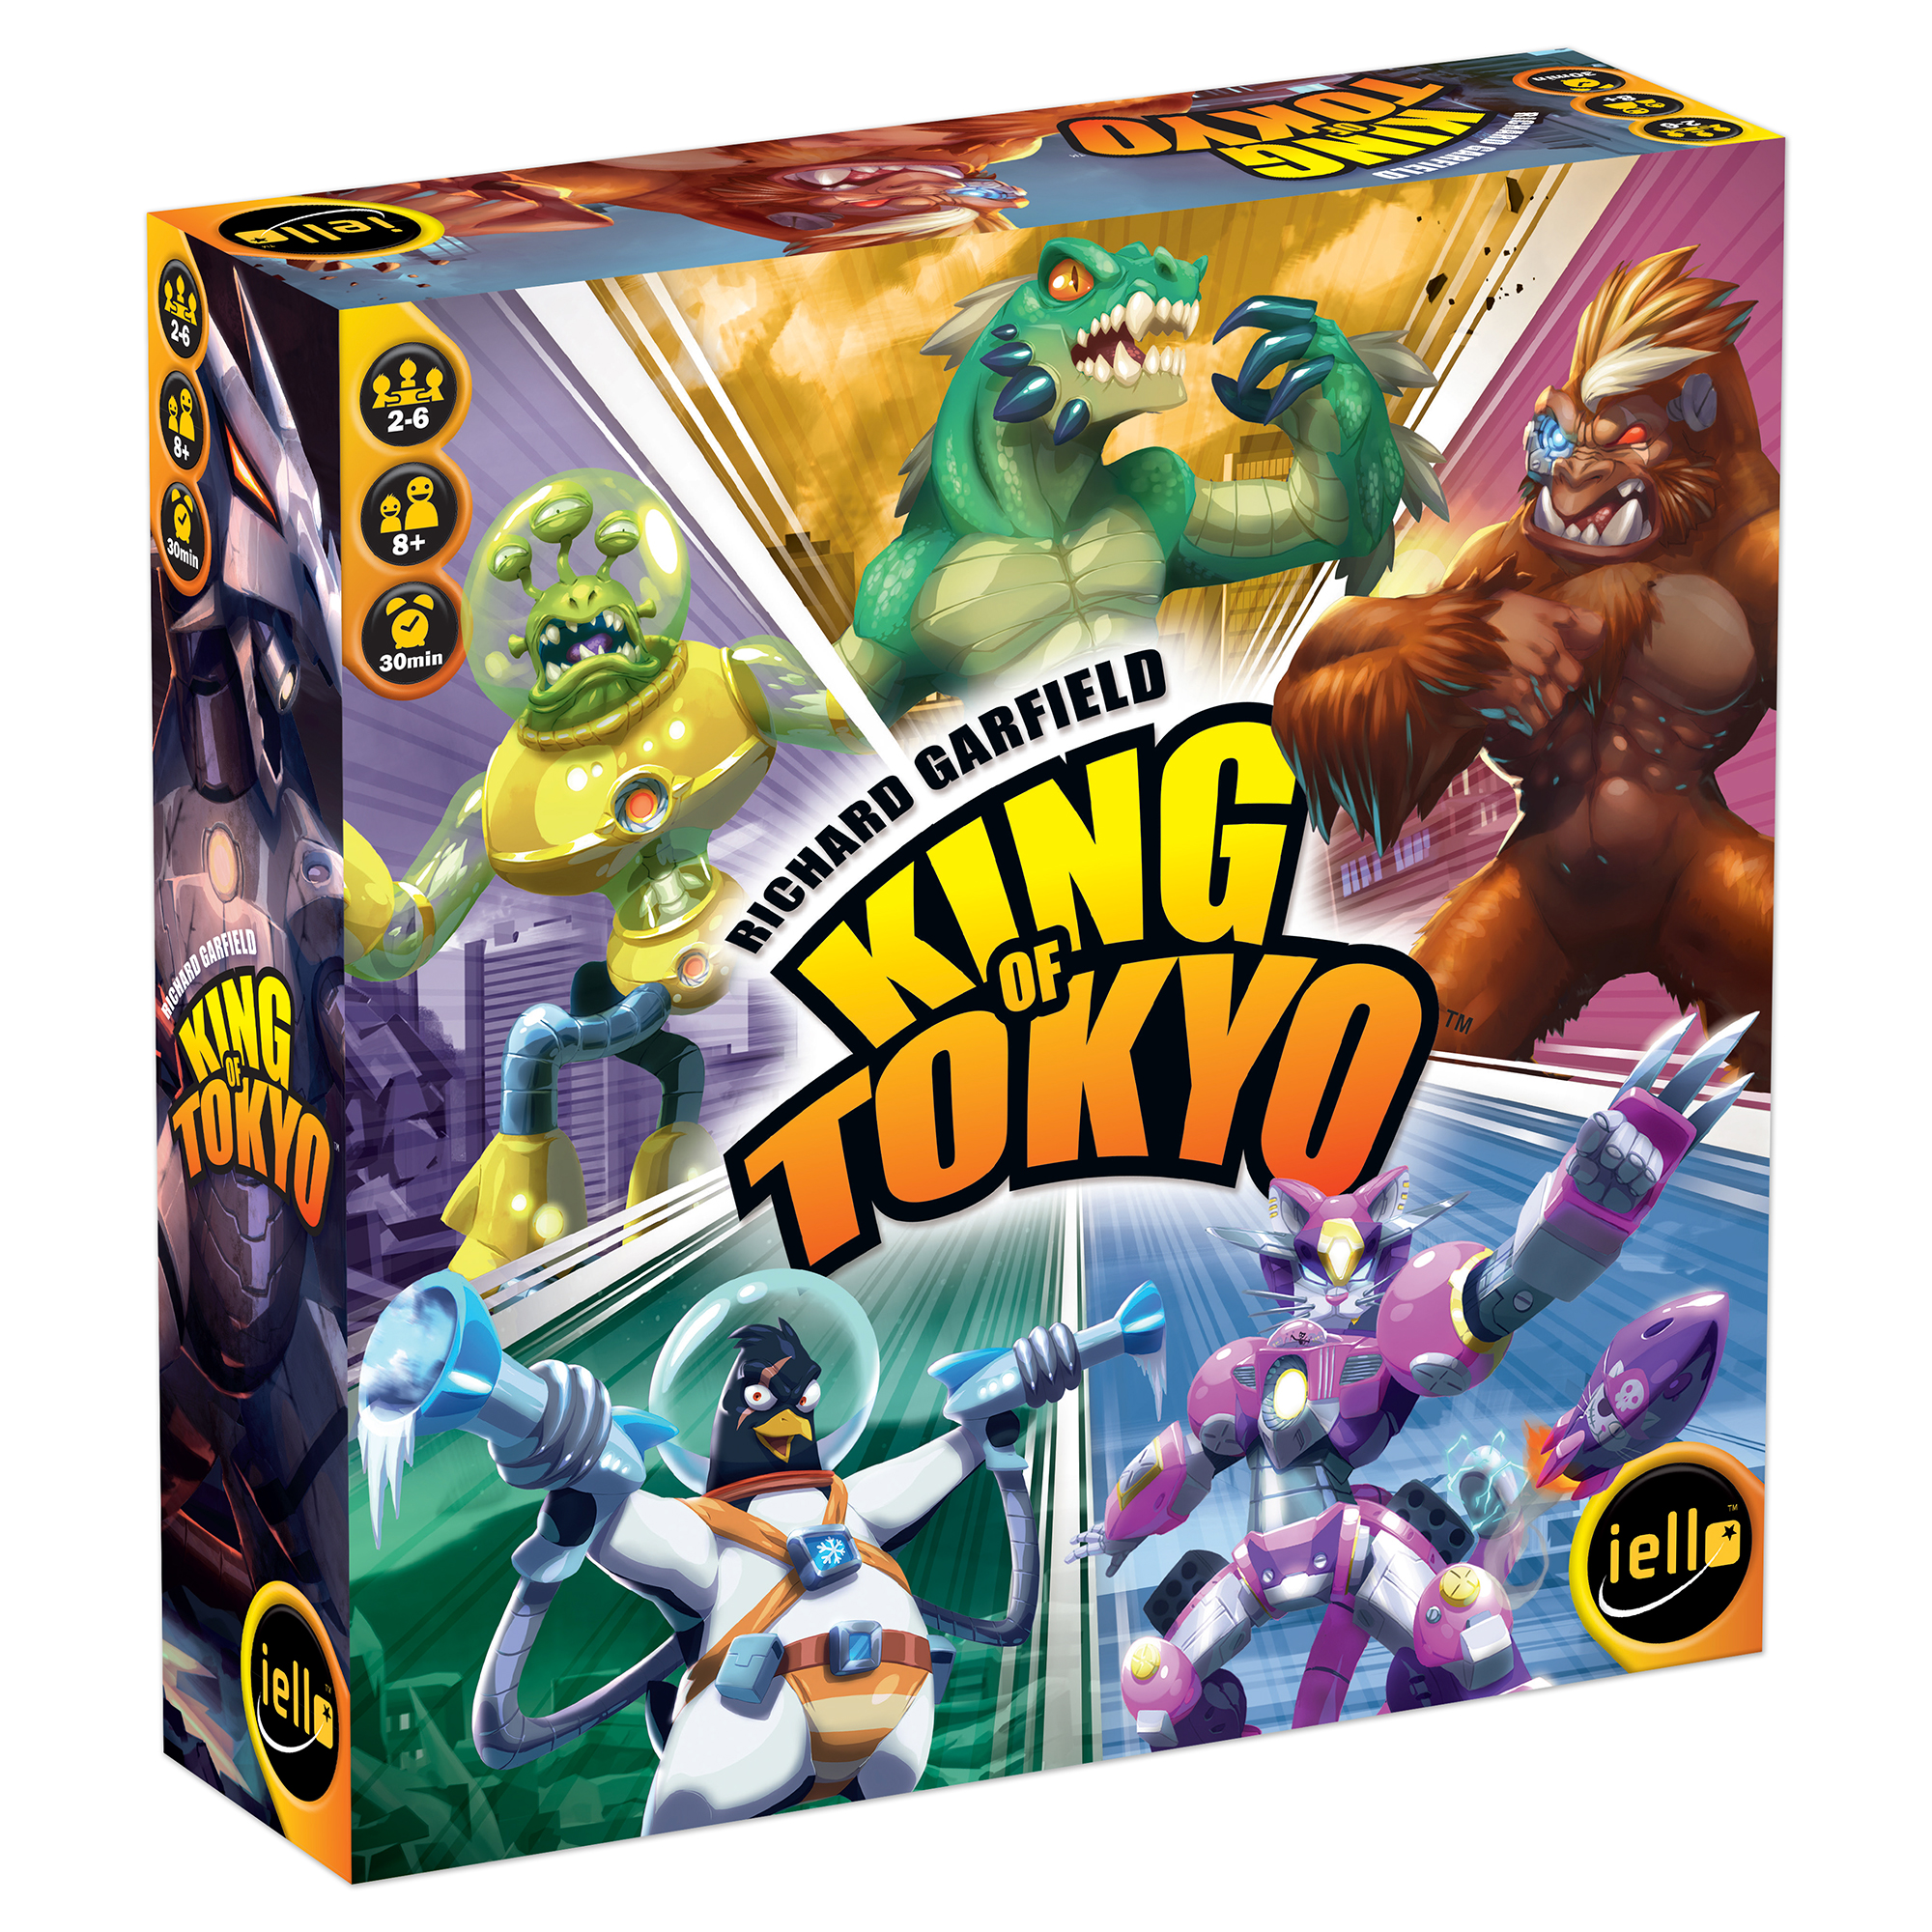 King of Tokyo new edition box